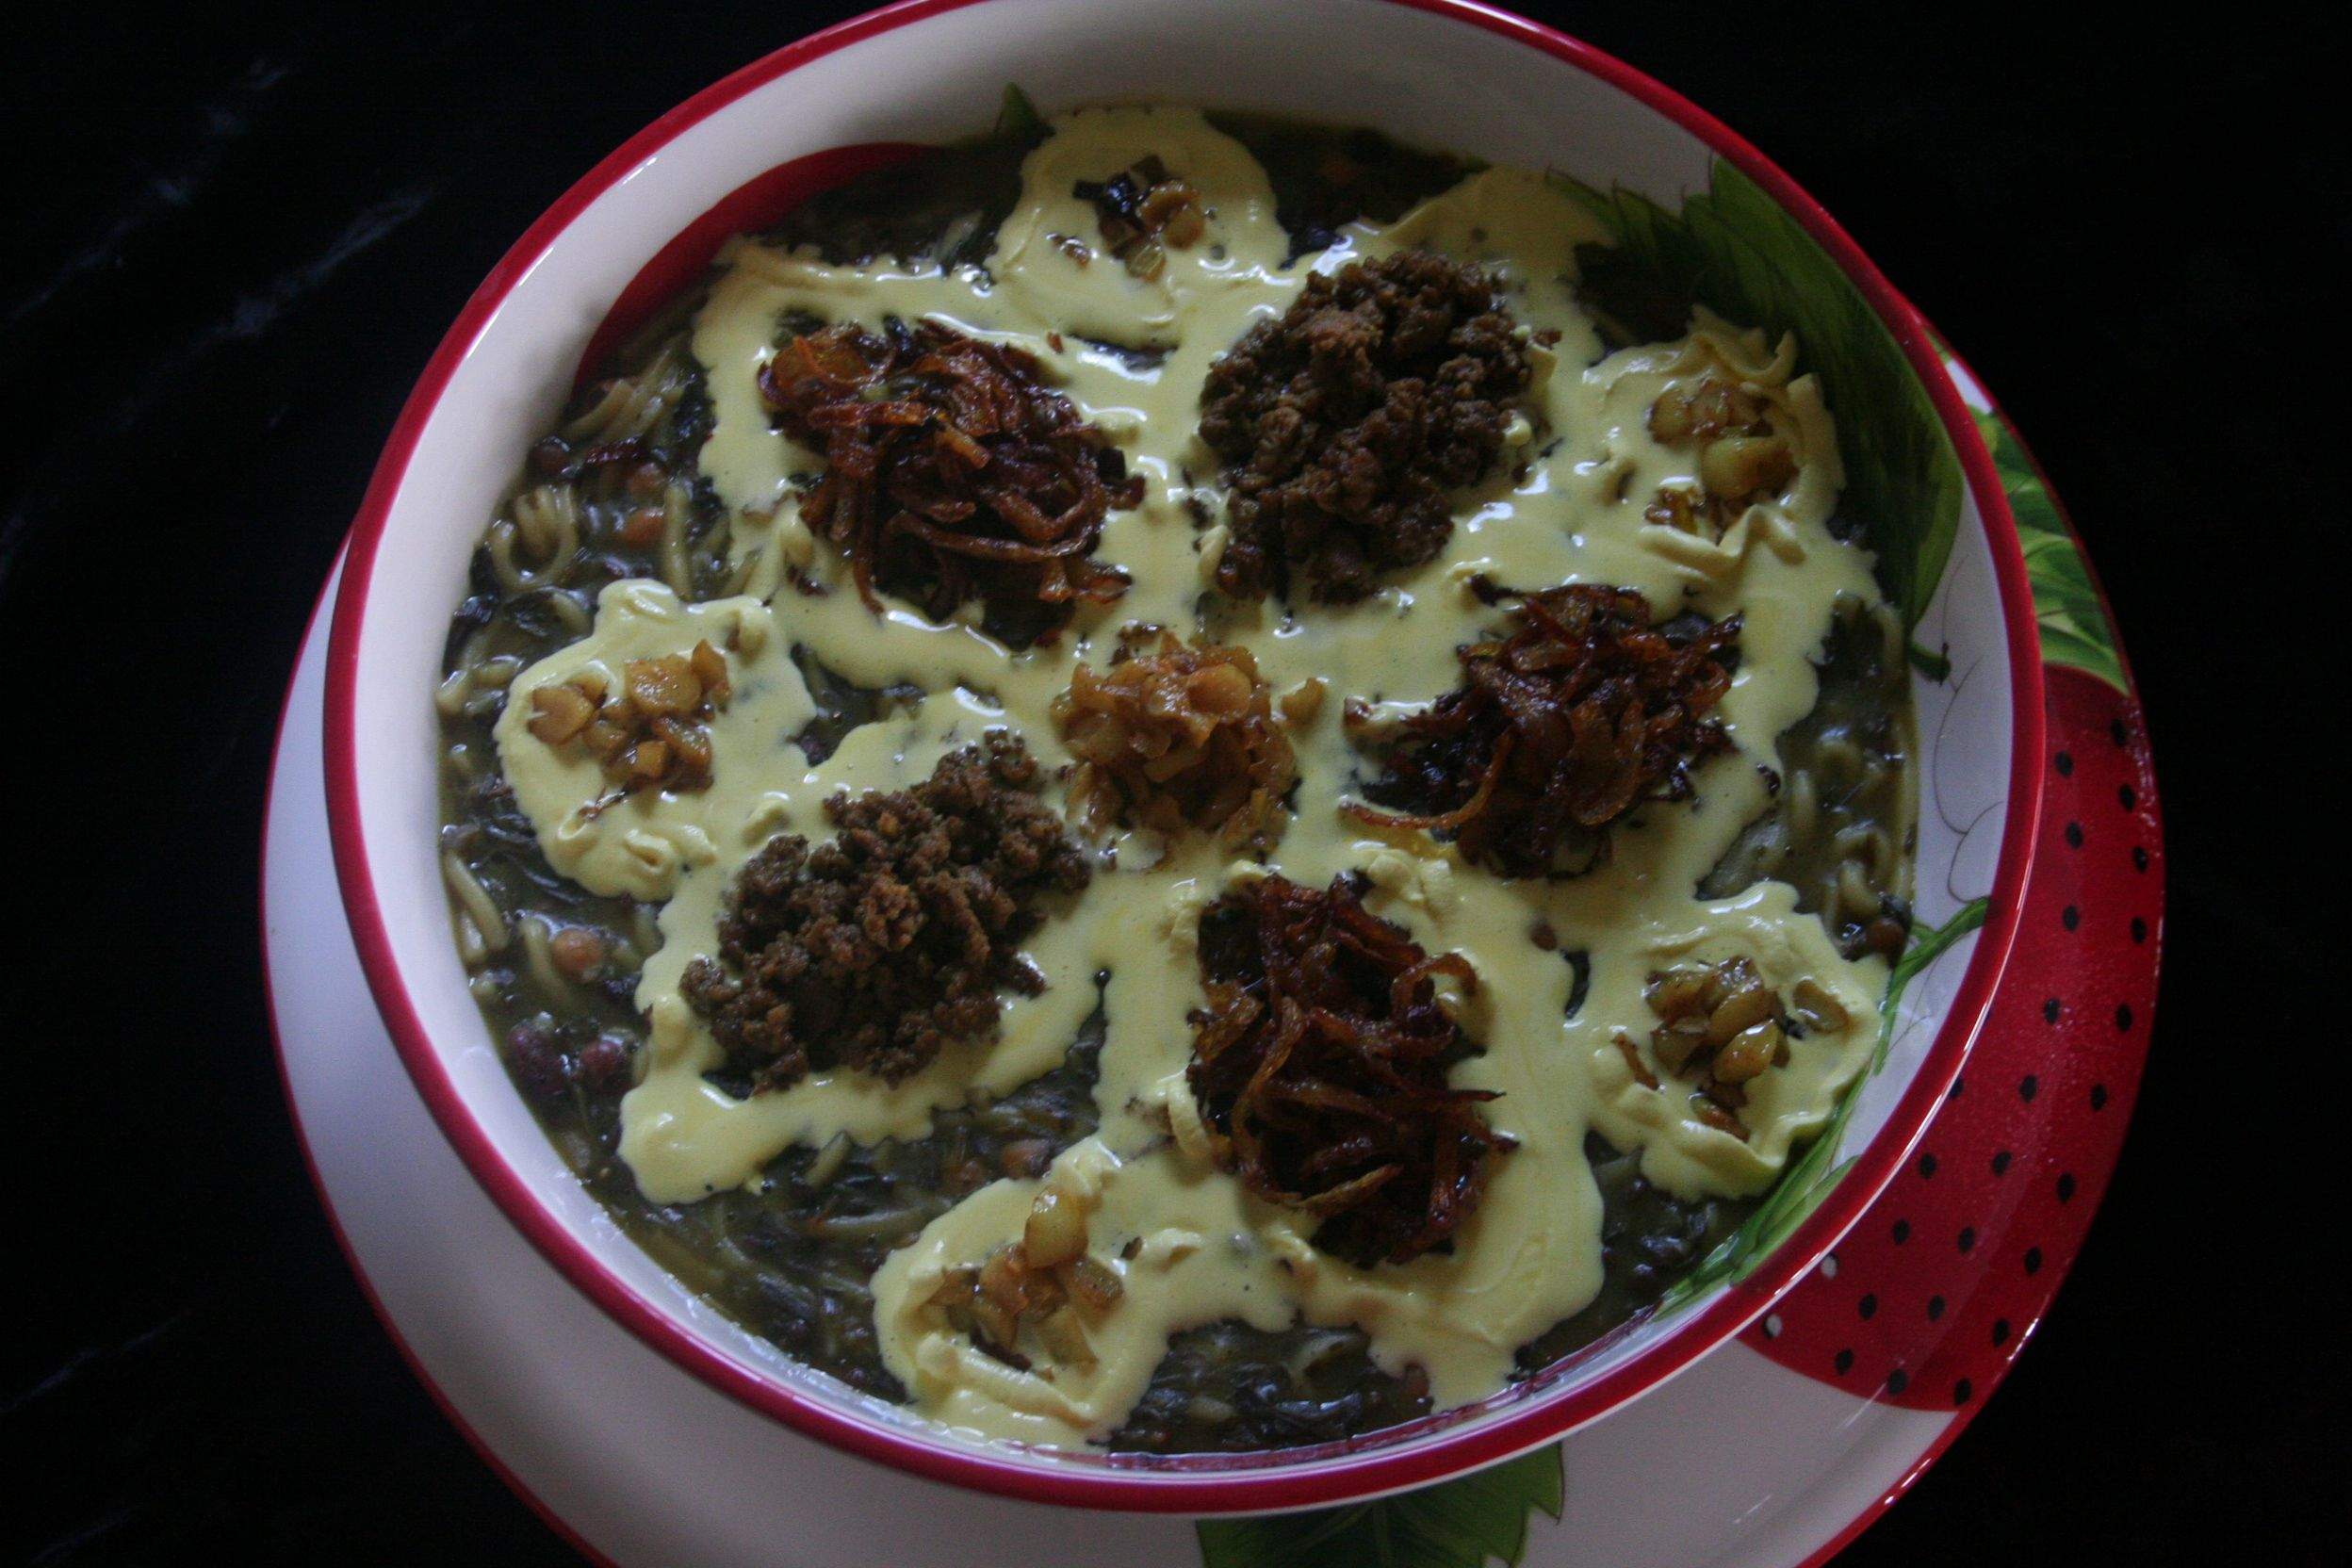 Ashe reshteh iranian noodle pottage for this and more delicious ashe reshteh iranian noodle pottage for this and more delicious recipes go to https forumfinder Gallery